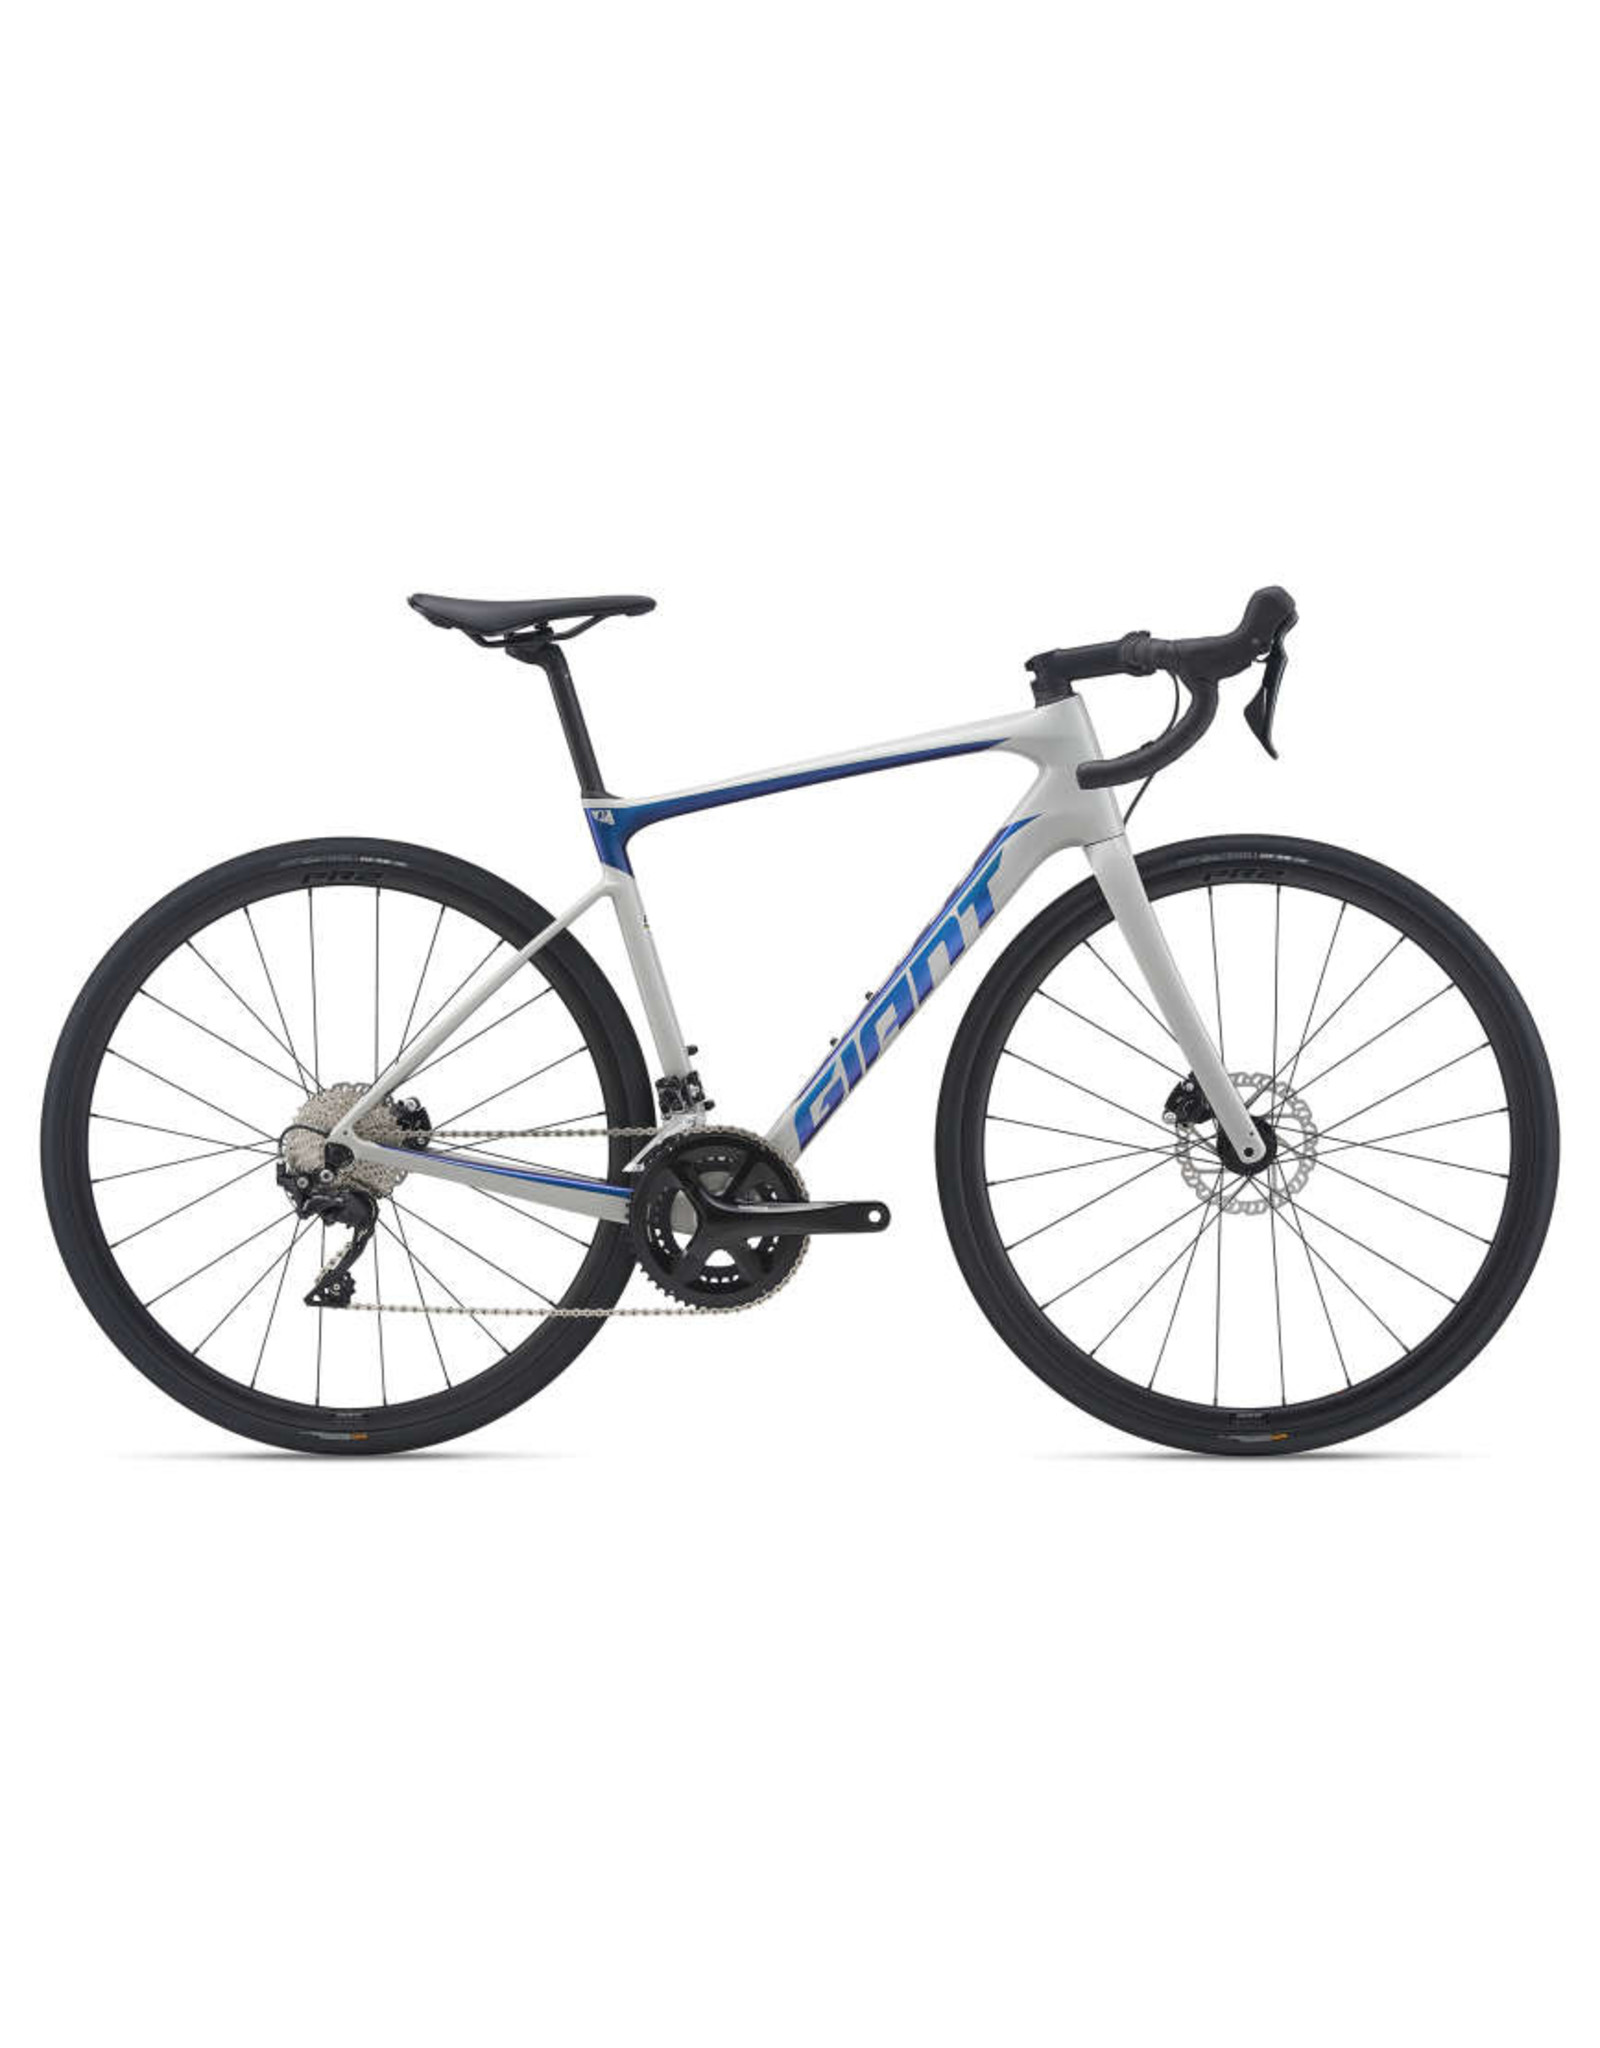 Giant Giant Defy Advanced 2 M Concrete 2021